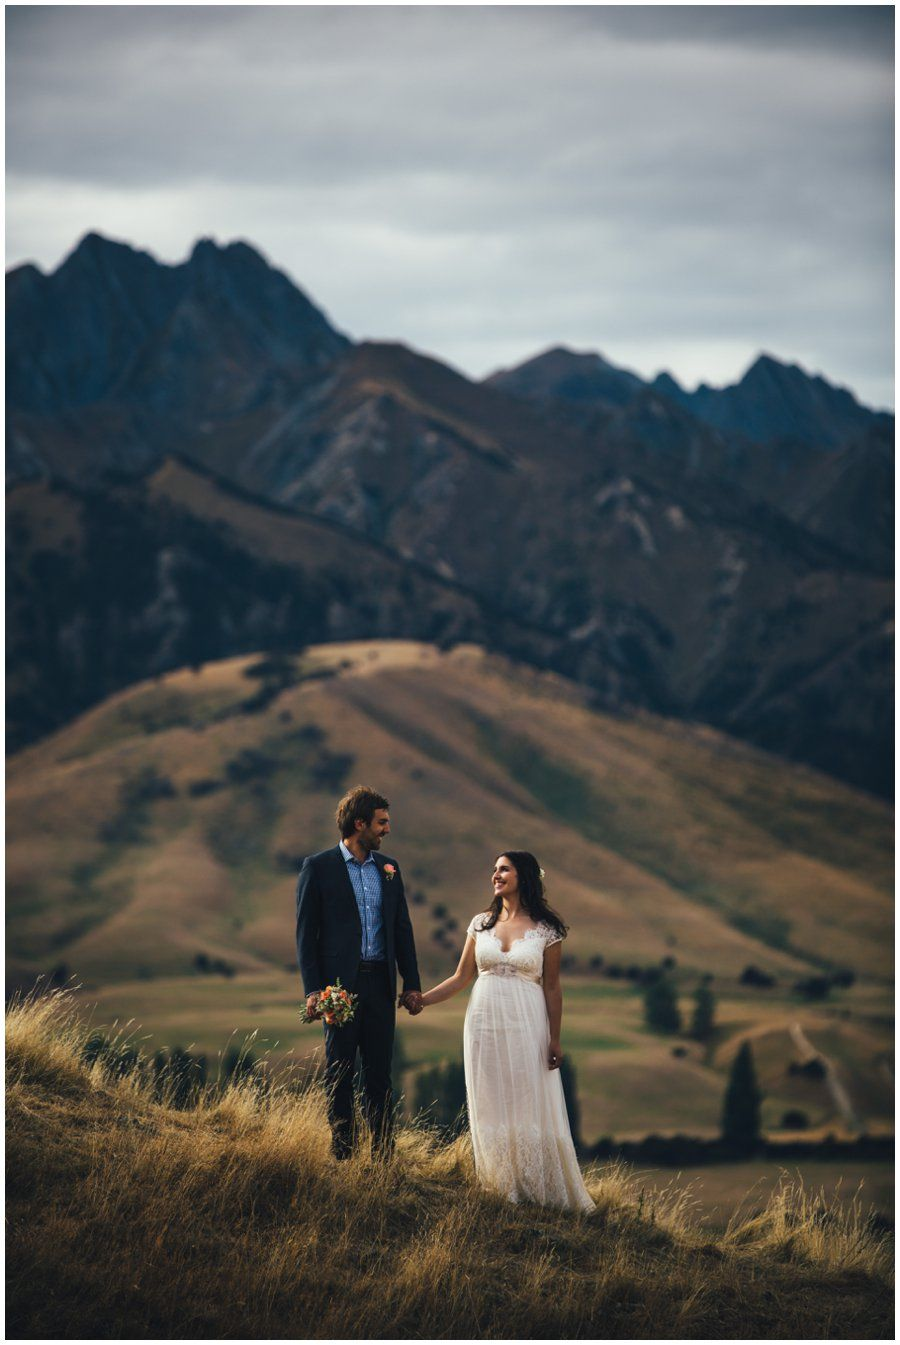 Emma & Steve s Wanaka wedding at Lookout Lodge grapher Jim